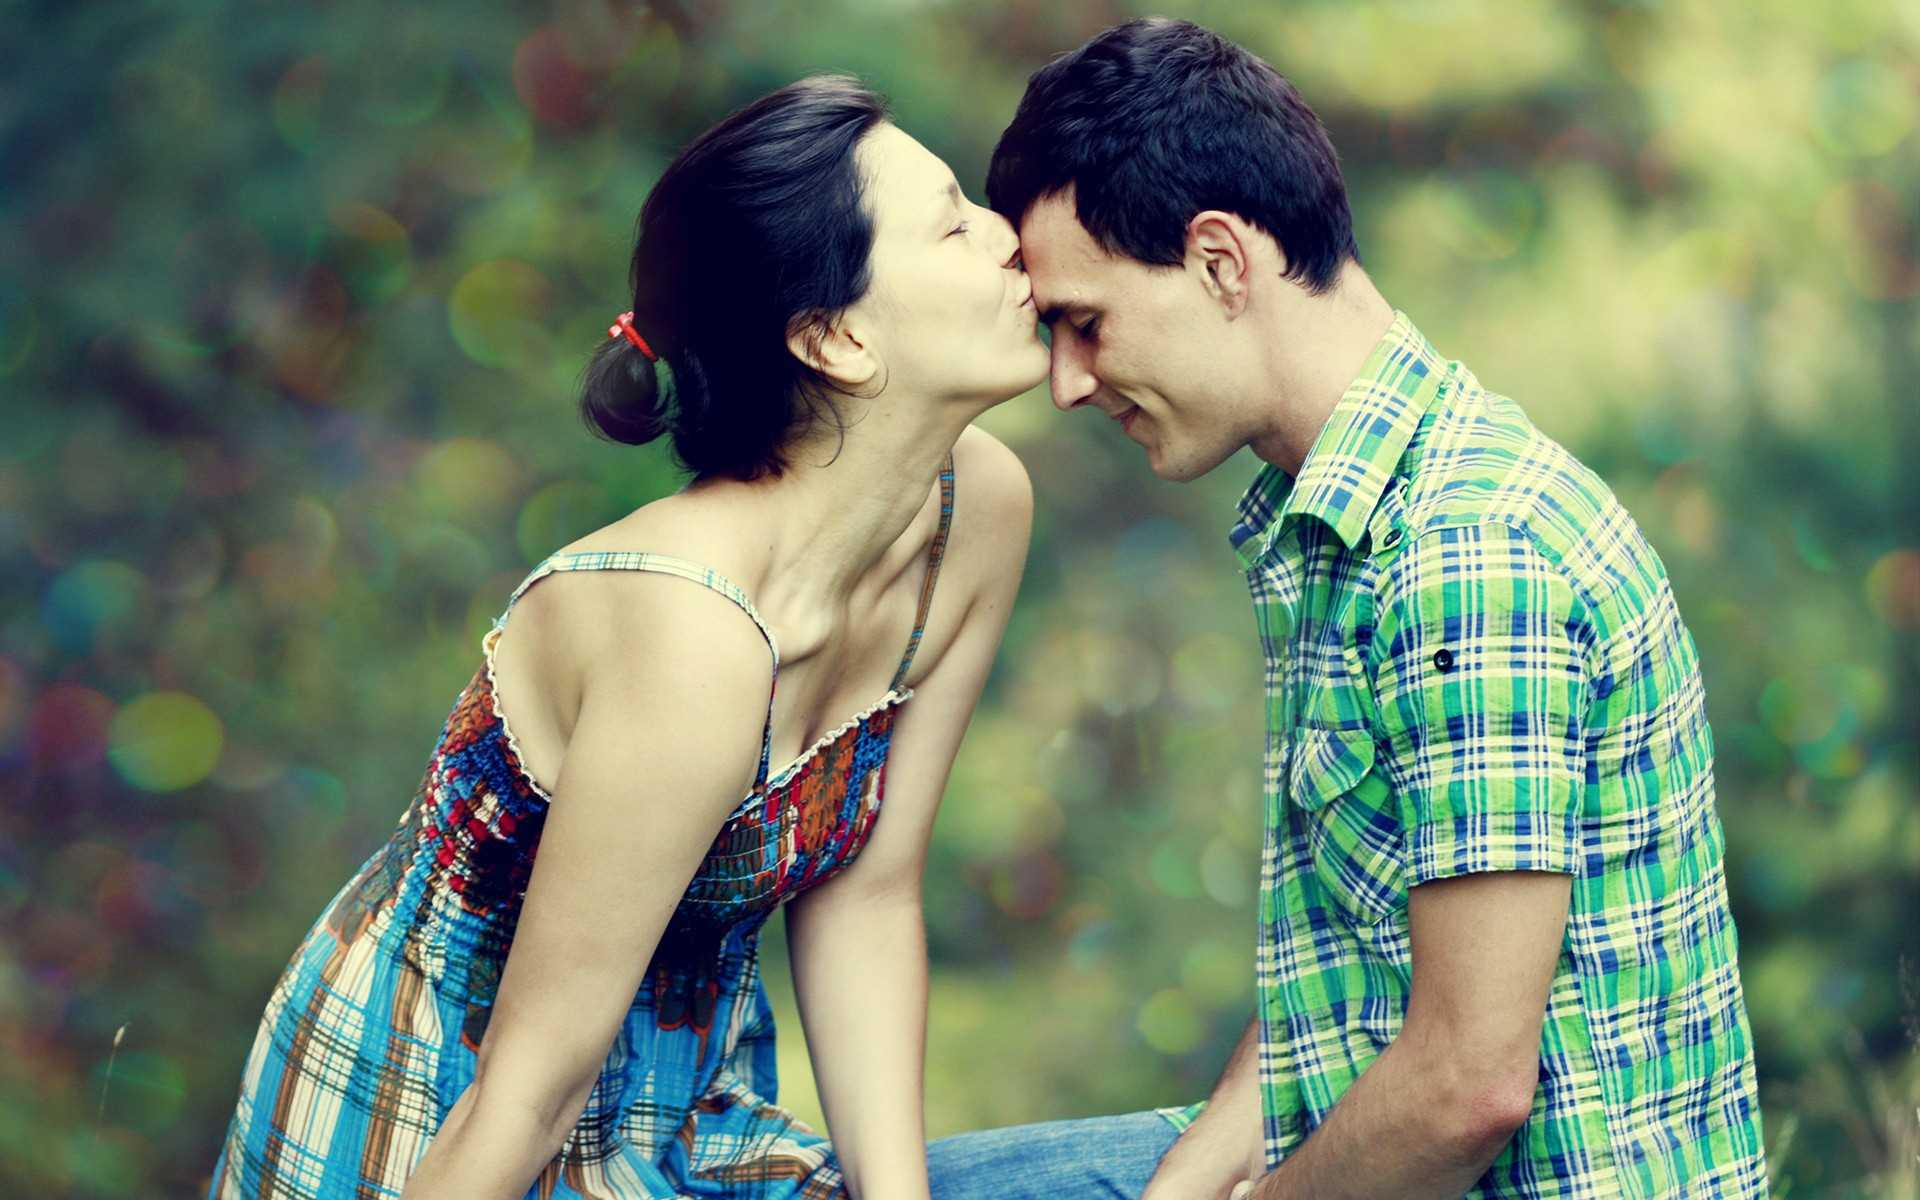 Sweet wallpapers of love couple wallpaper cave.